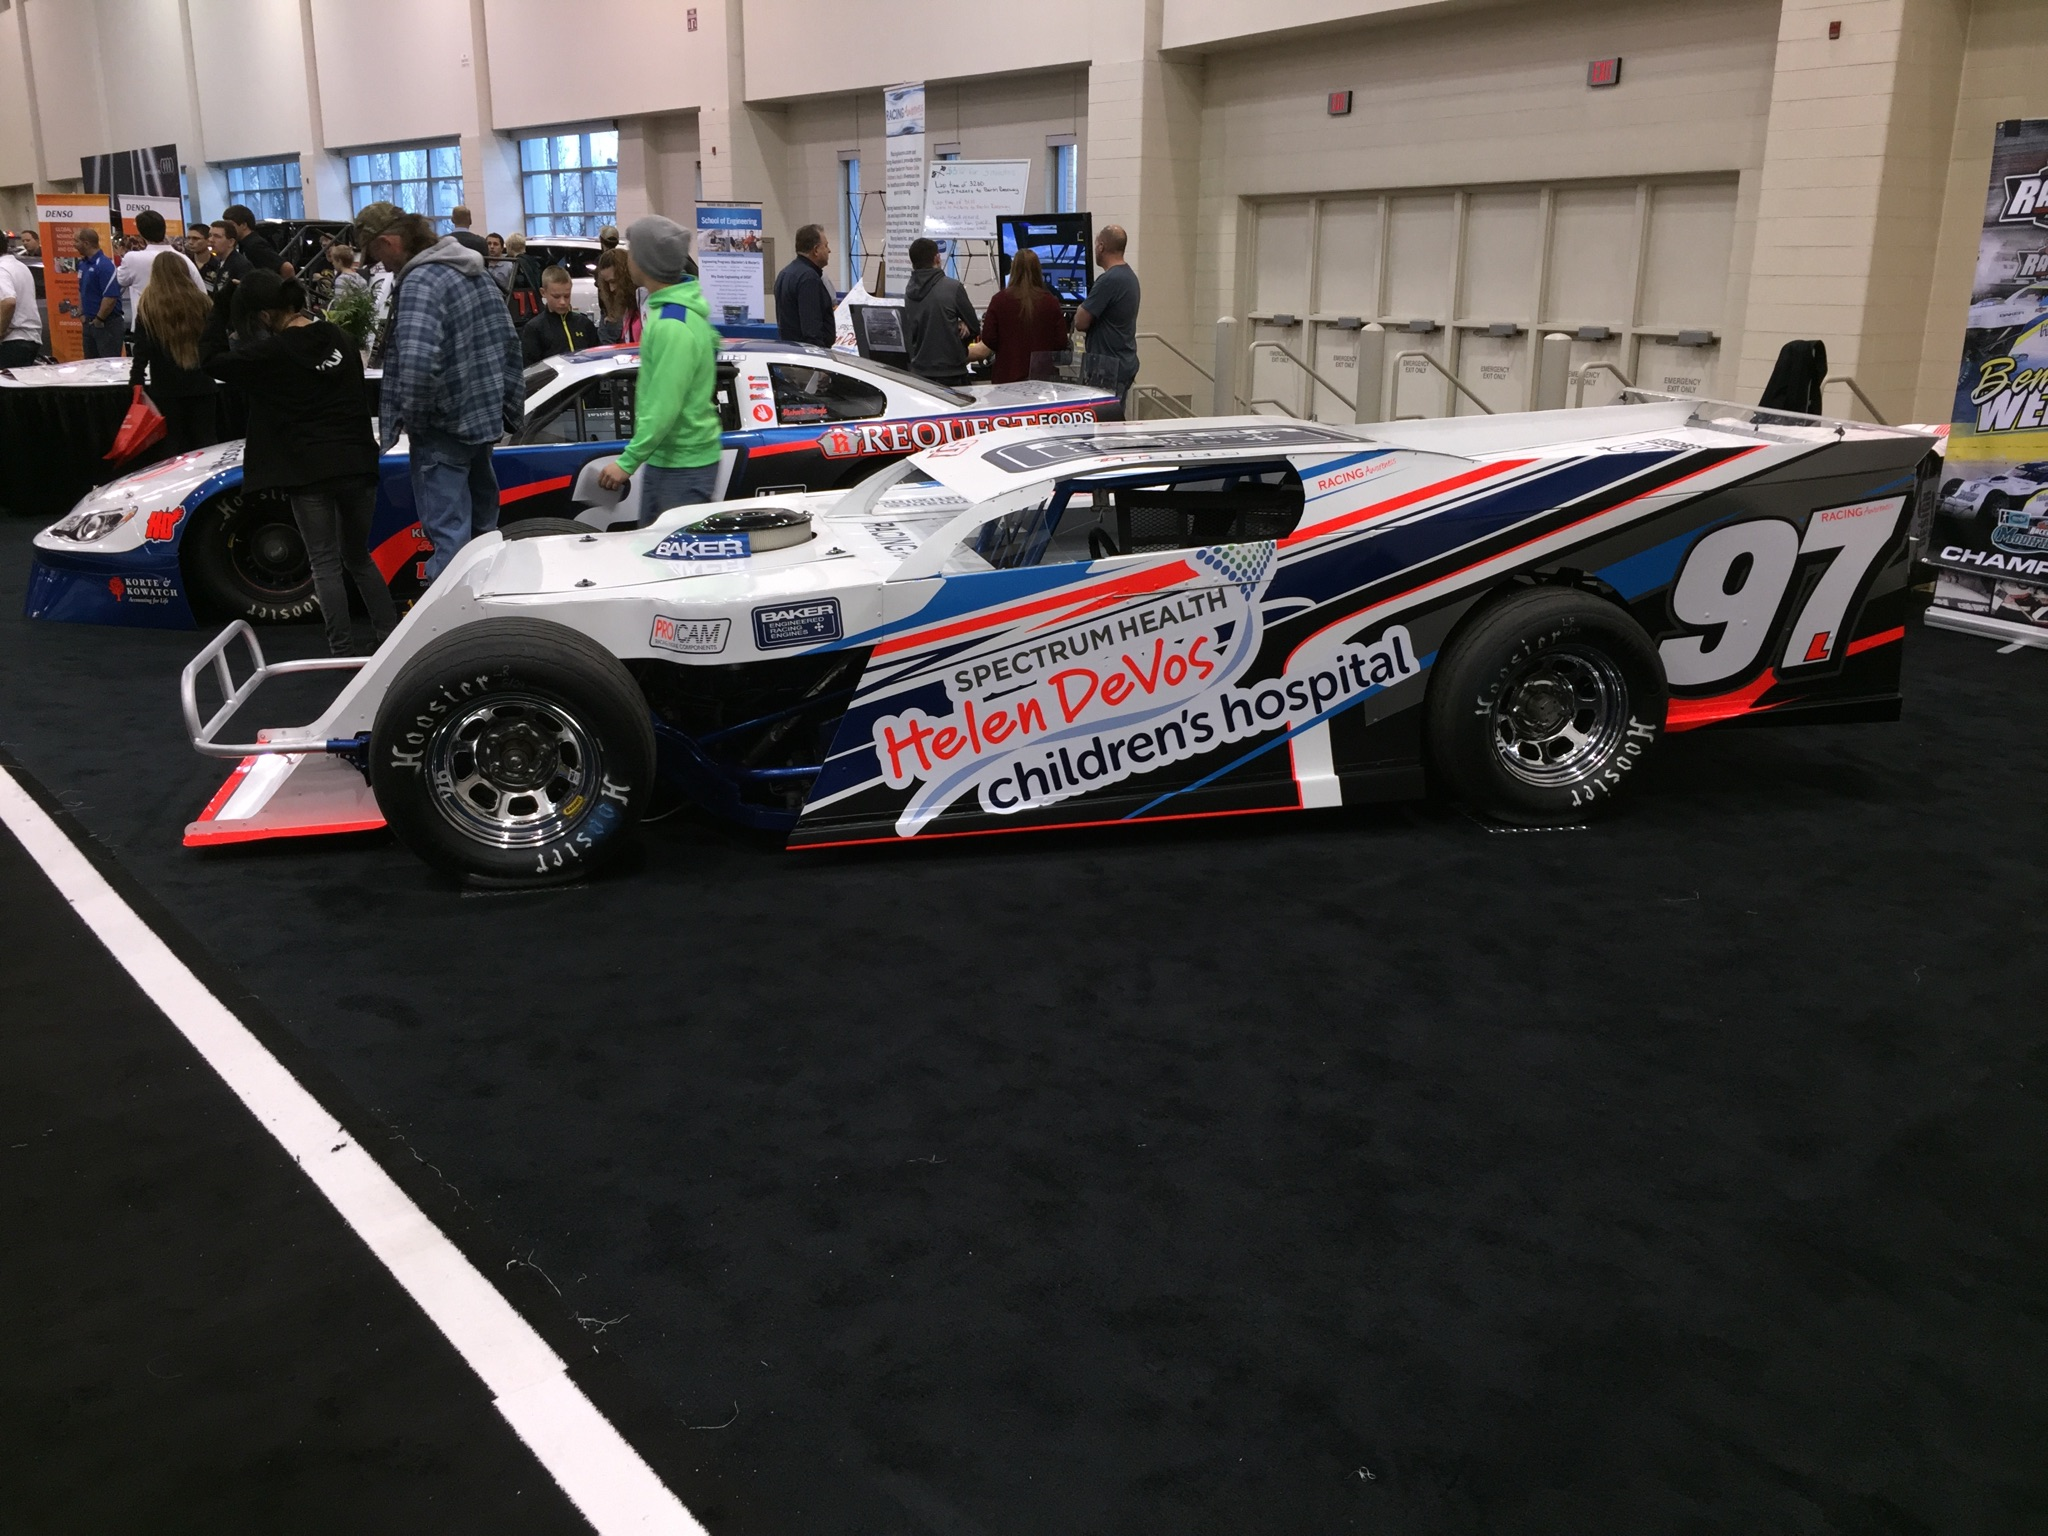 News racingawareness grand rapids mi october 20 2015 racingawareness announced today that its 17 year old driver ben welch would drive one the teams two super solutioingenieria Images